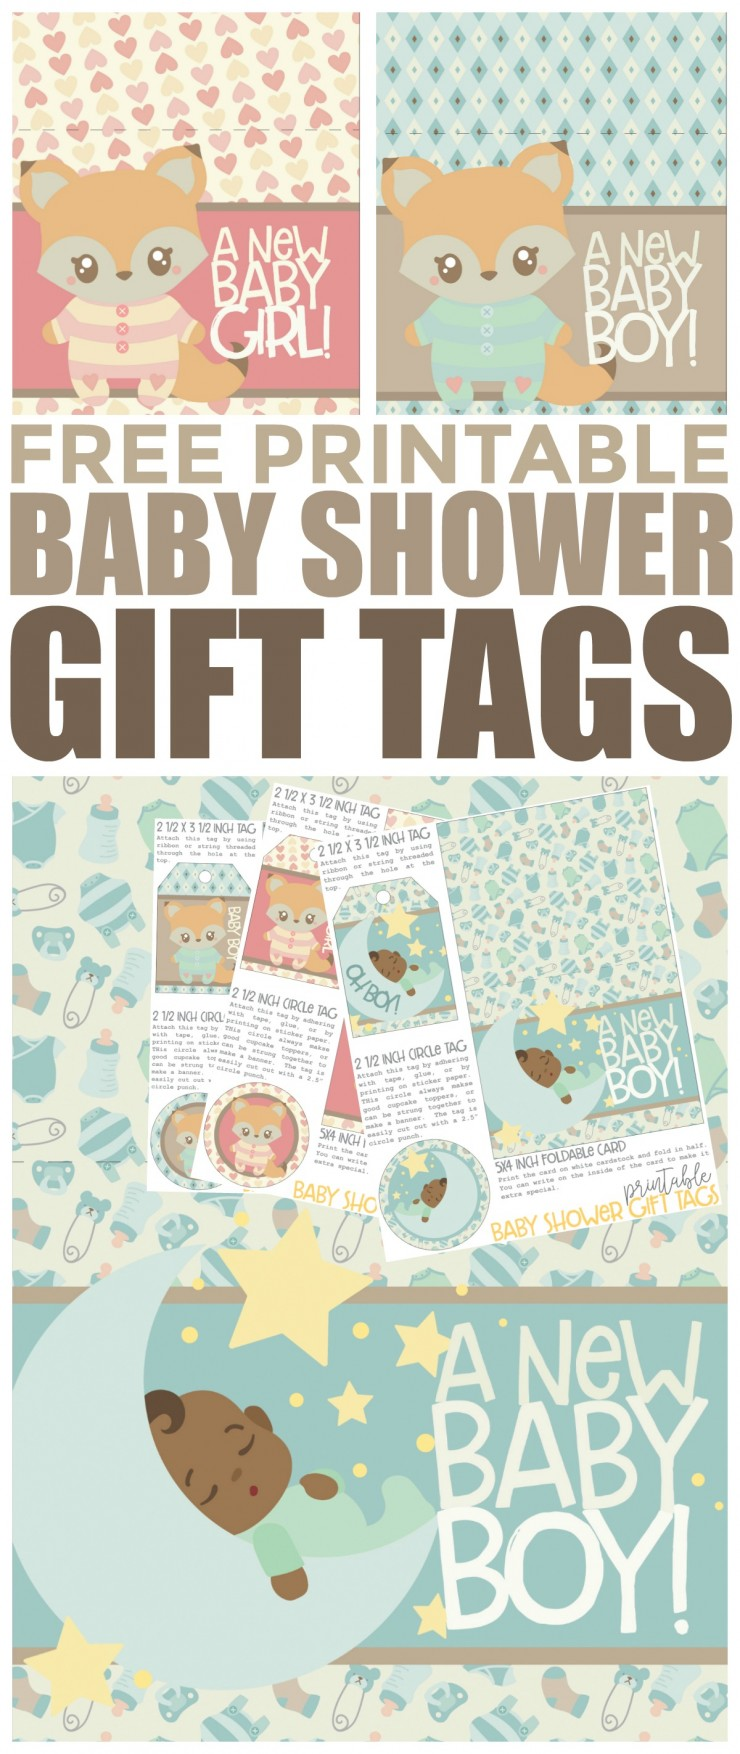 Sizzling image inside free printable baby shower gift tags